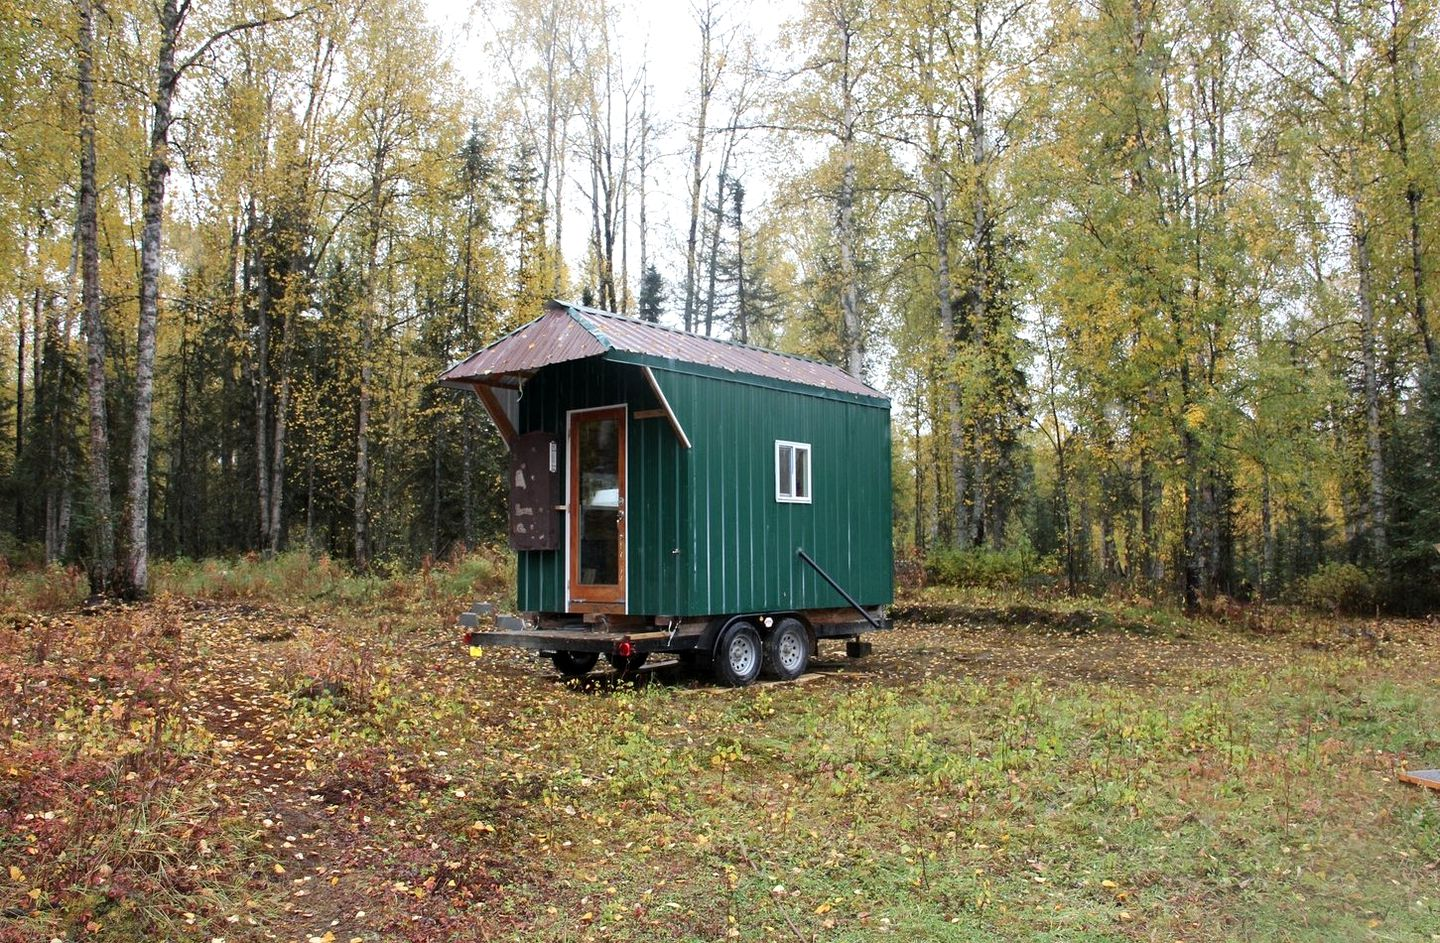 One-of-a-Kind Tiny House Rental on a Sustainable Permaculture Farm in  Talkeetna, Alaska